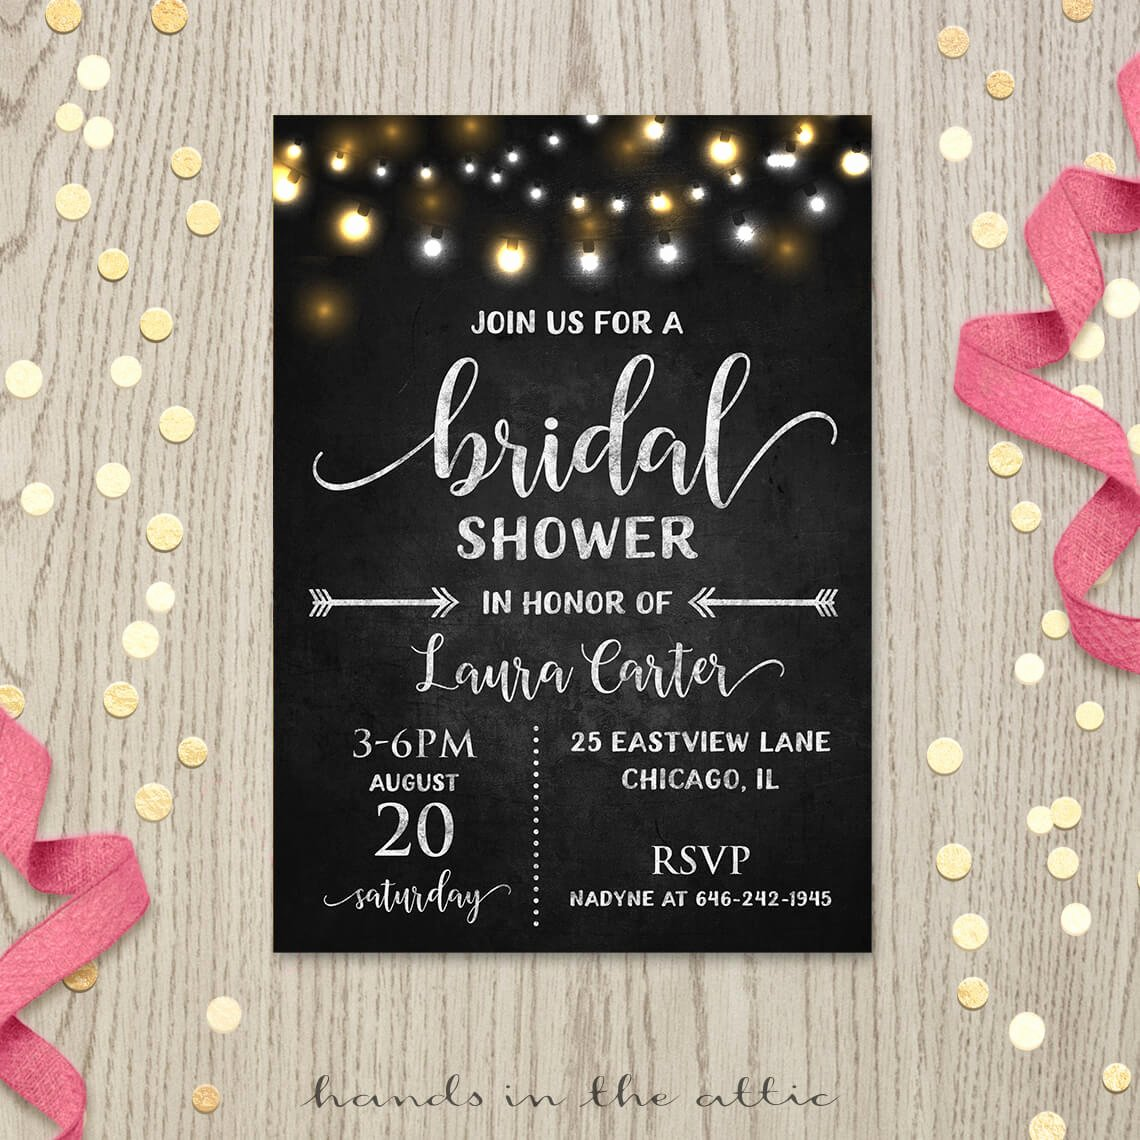 Chalkboard Bridal Shower Invitations Elegant Fairy Lights Chalkboard Bridal Shower Invitation